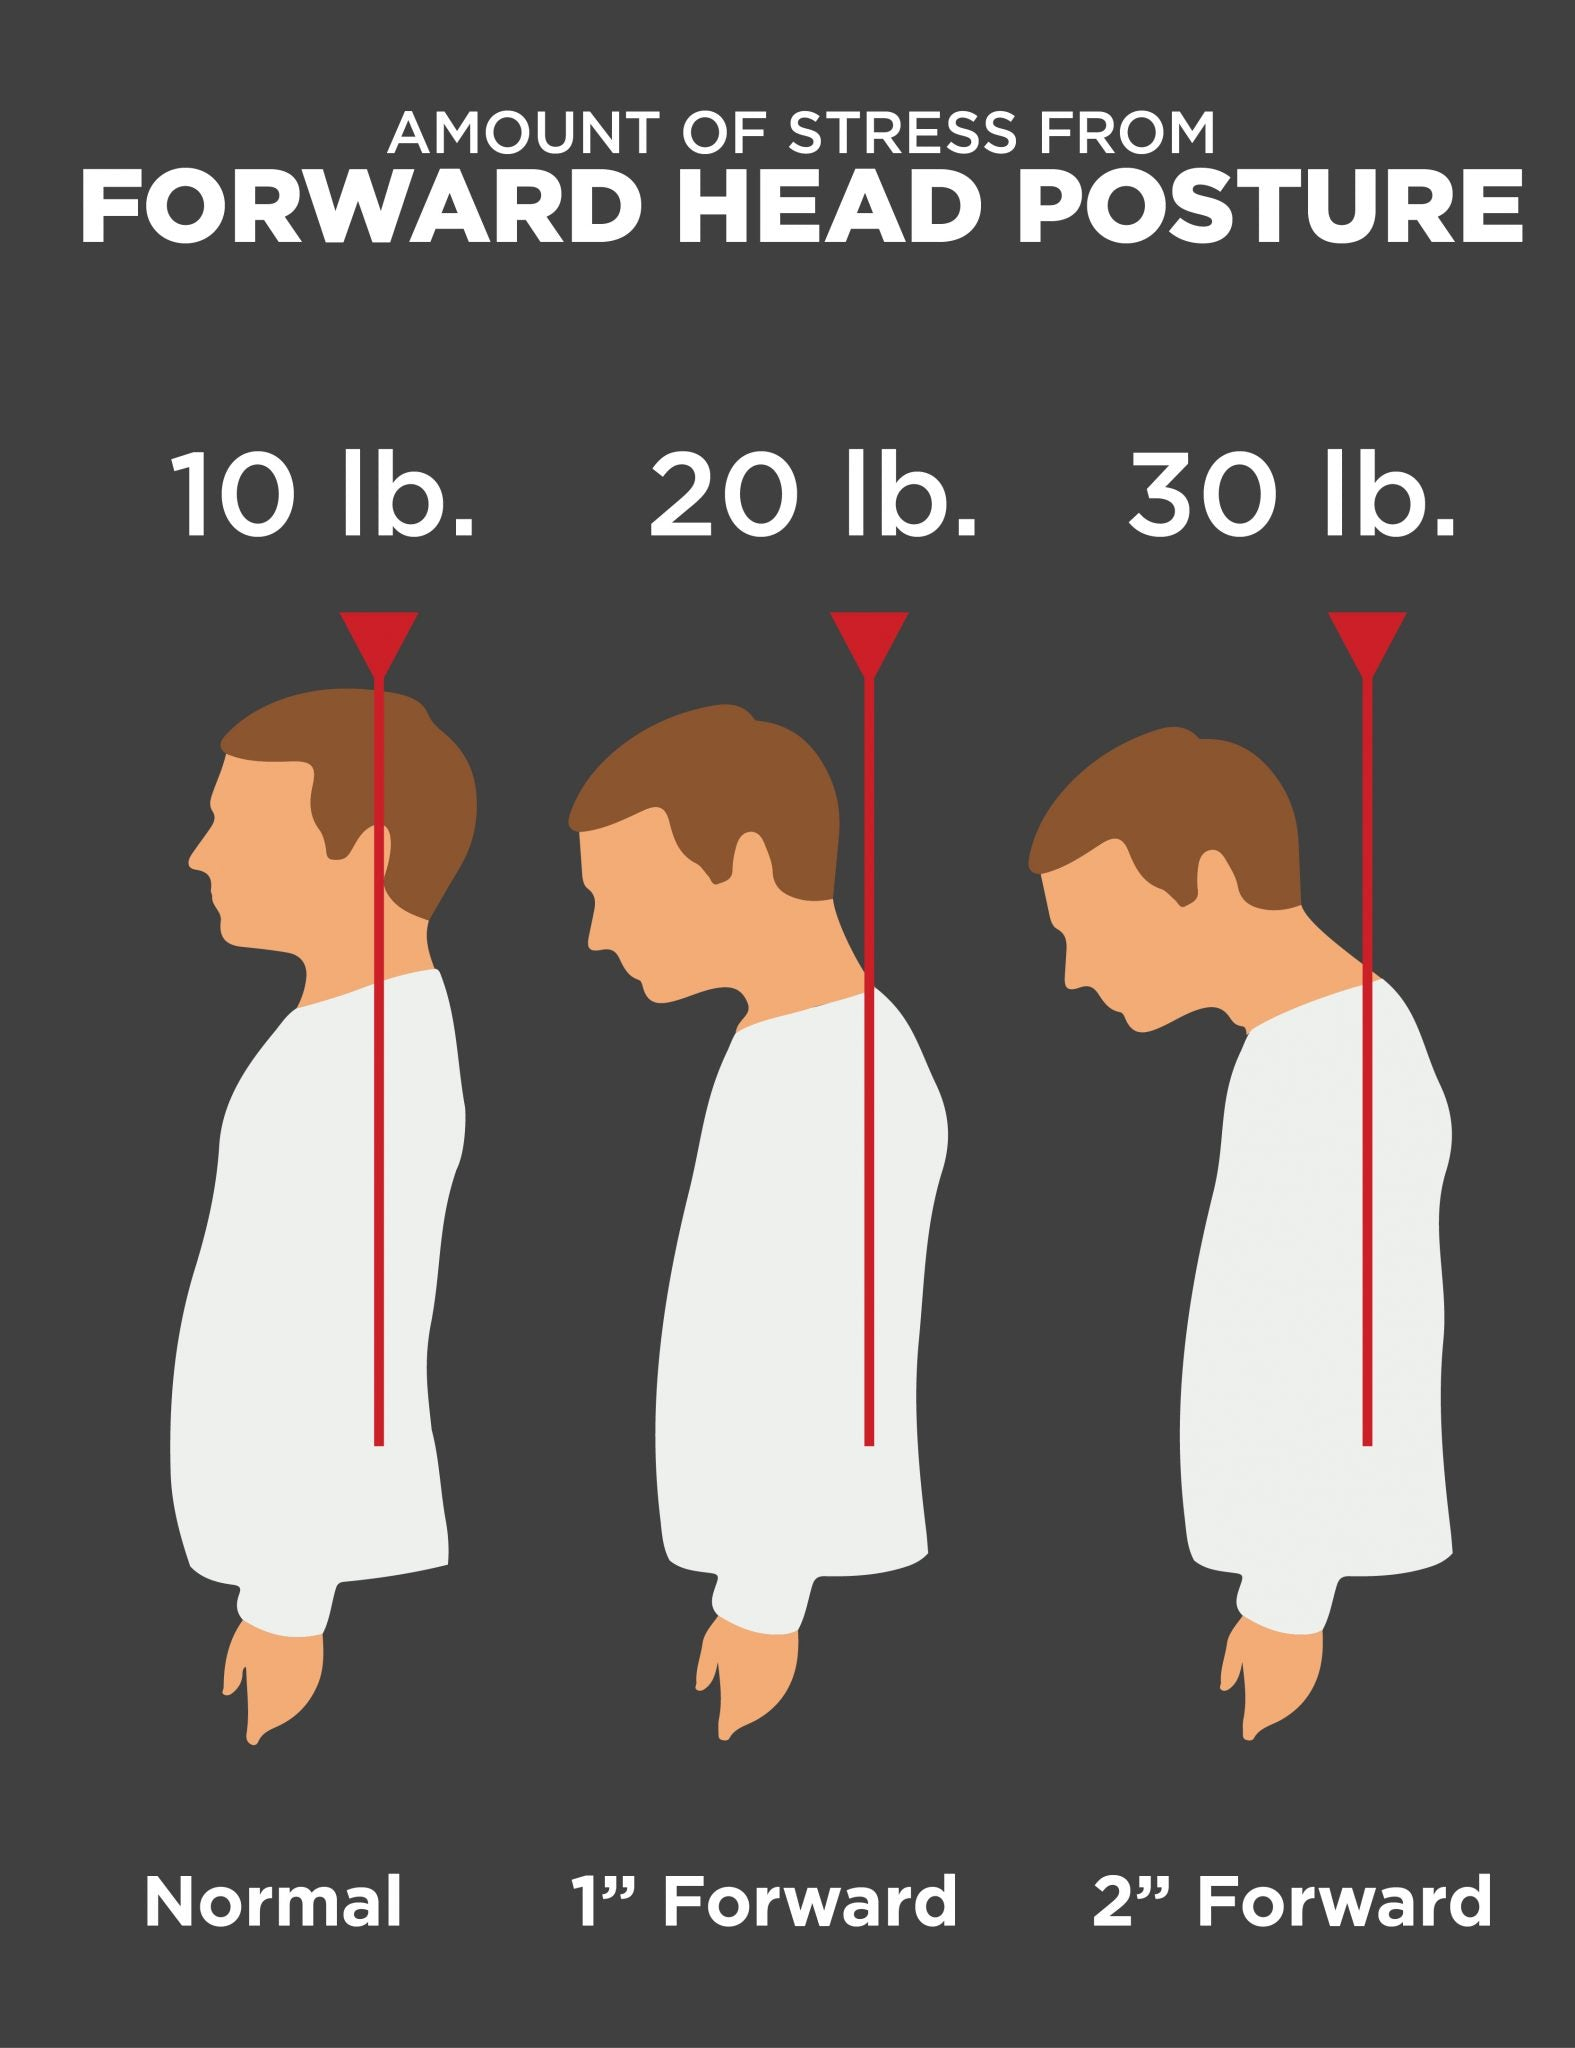 The further forward your head posture is the more stress in puts on your back